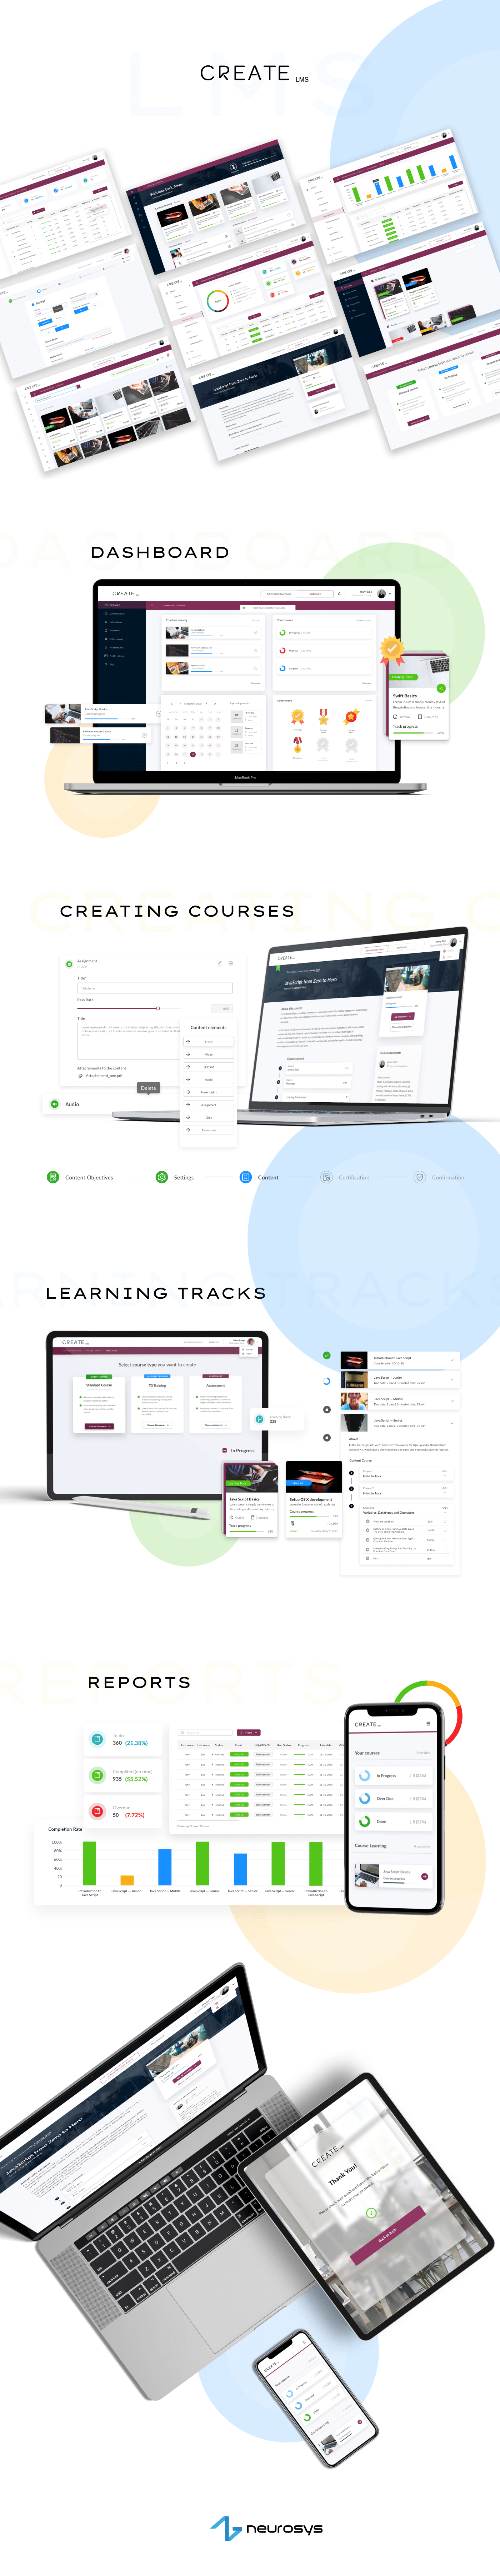 dashboard e-learning platform eLearning LMS NeuroSYS software house UI ux